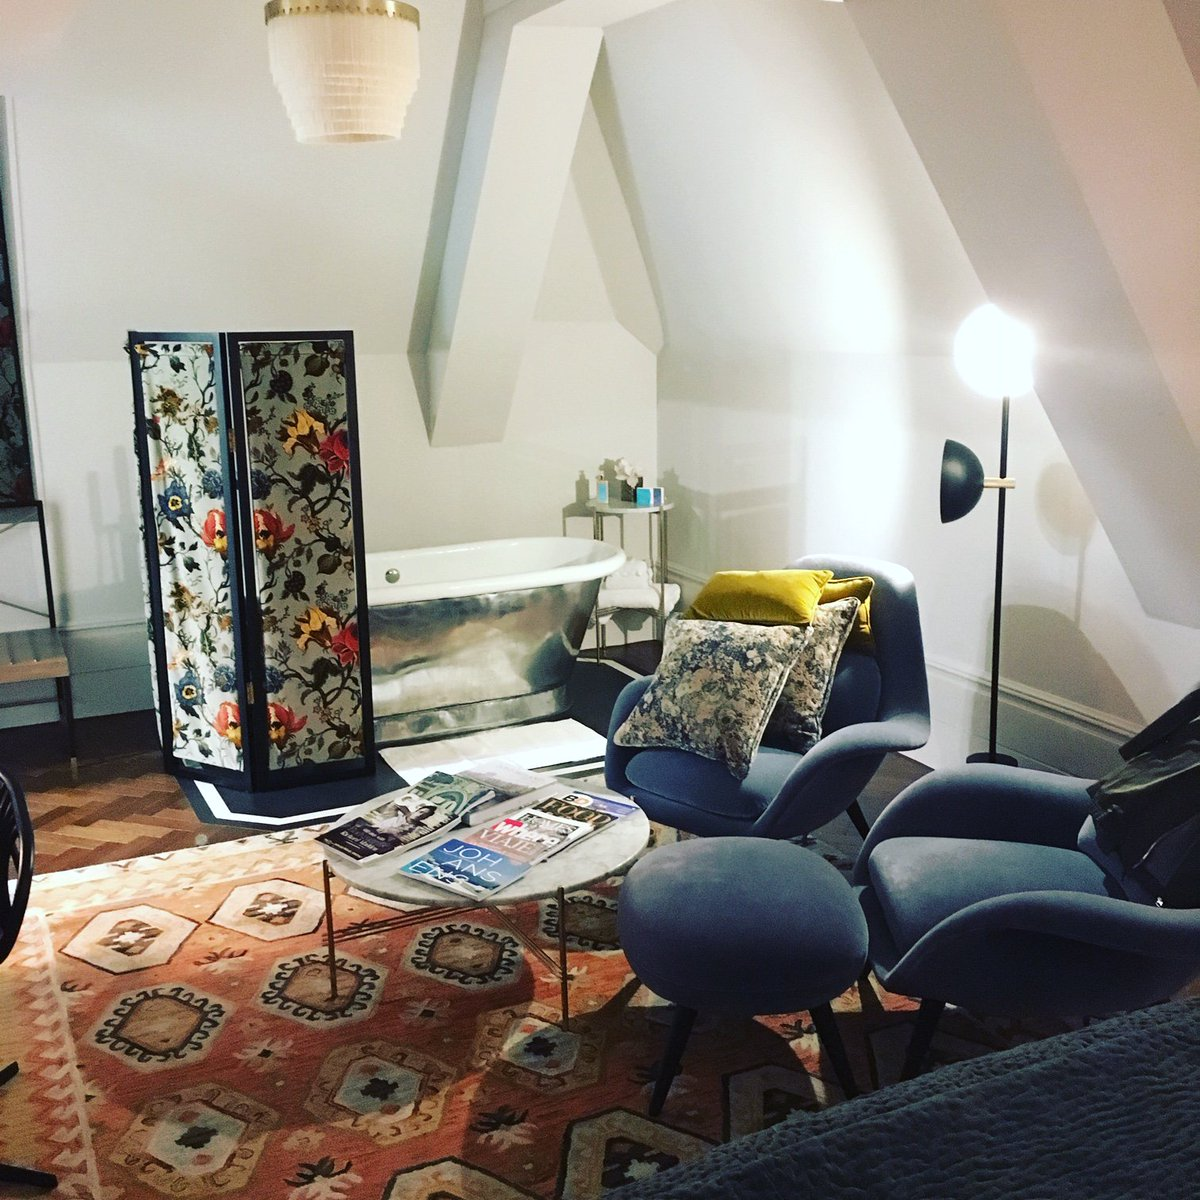 Wow! The Studio Suites @HotelBloomsbury are such a delight. Love the stylish decor and the freestanding bath is the perfect way to relax after a long day. #londonhotels #LuxuryTravel